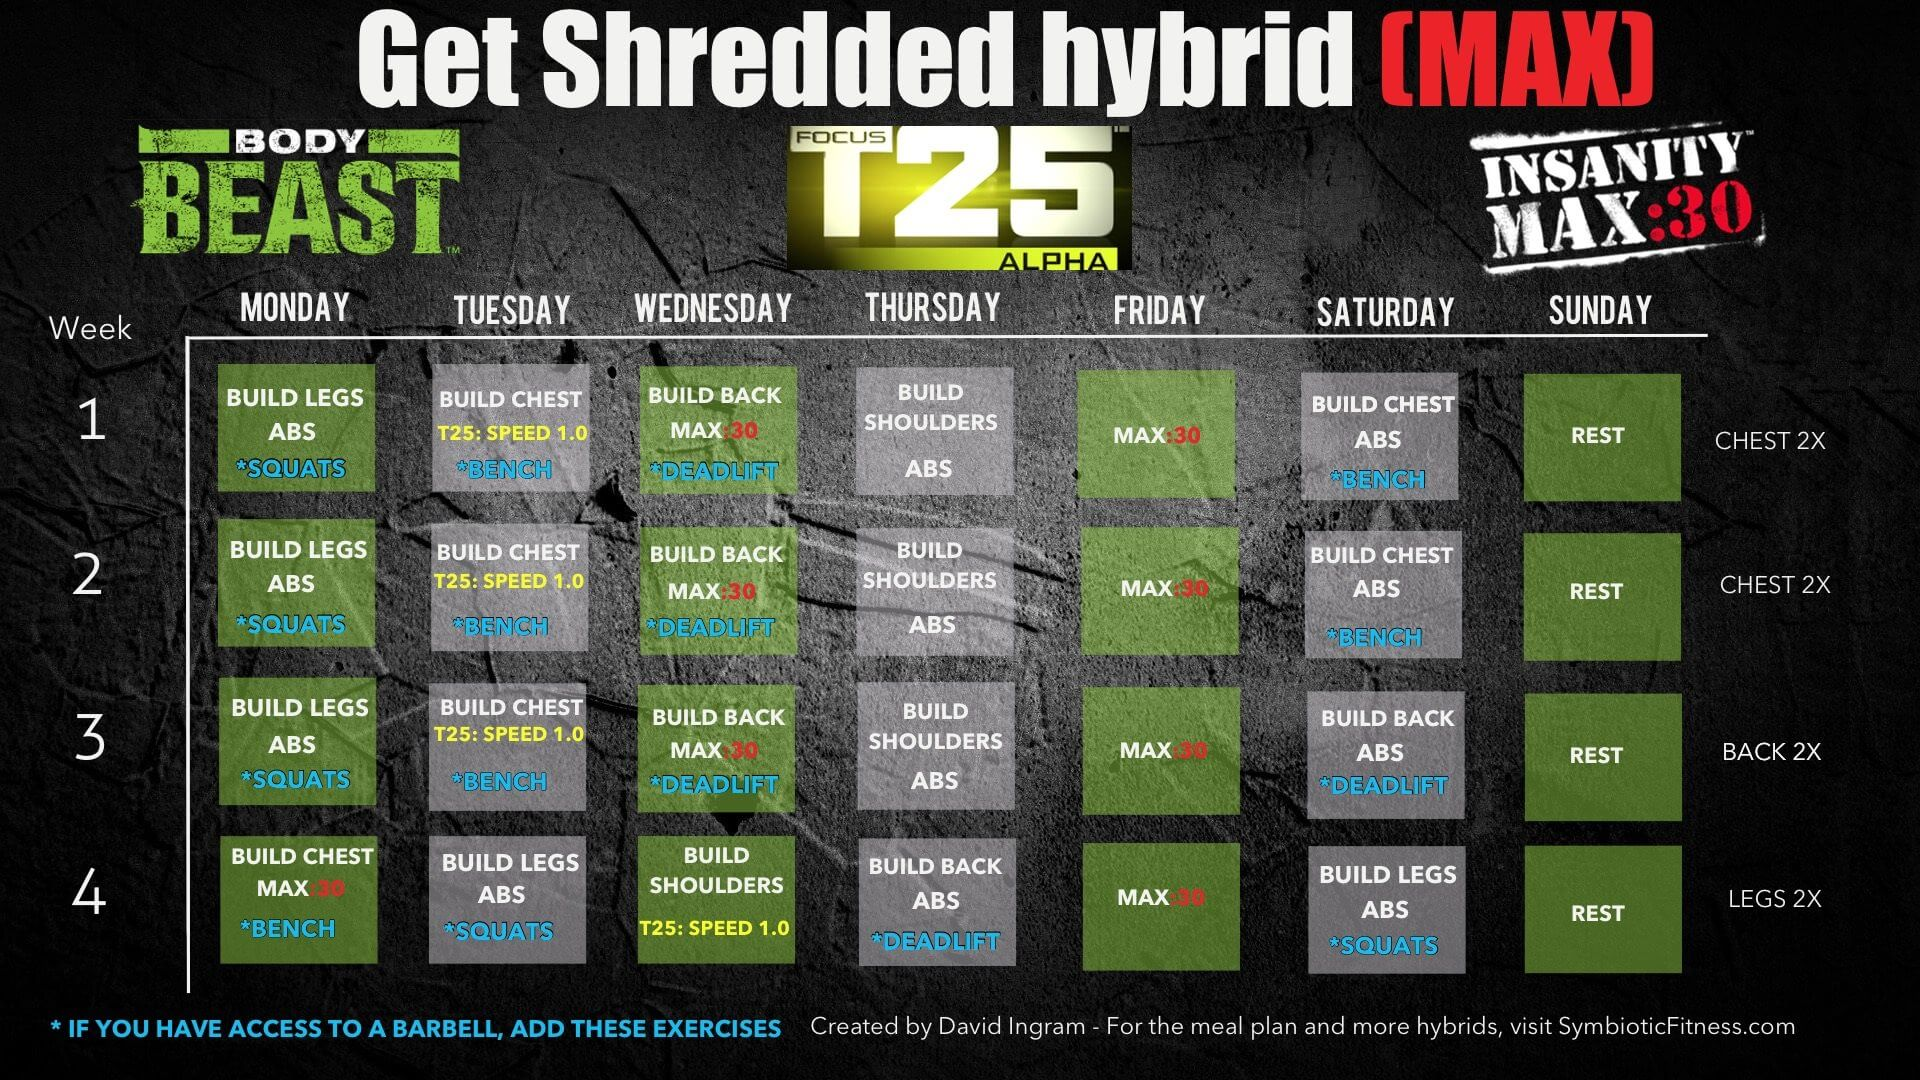 Bodybeast Hybrid With Insanity Max 30 And T25